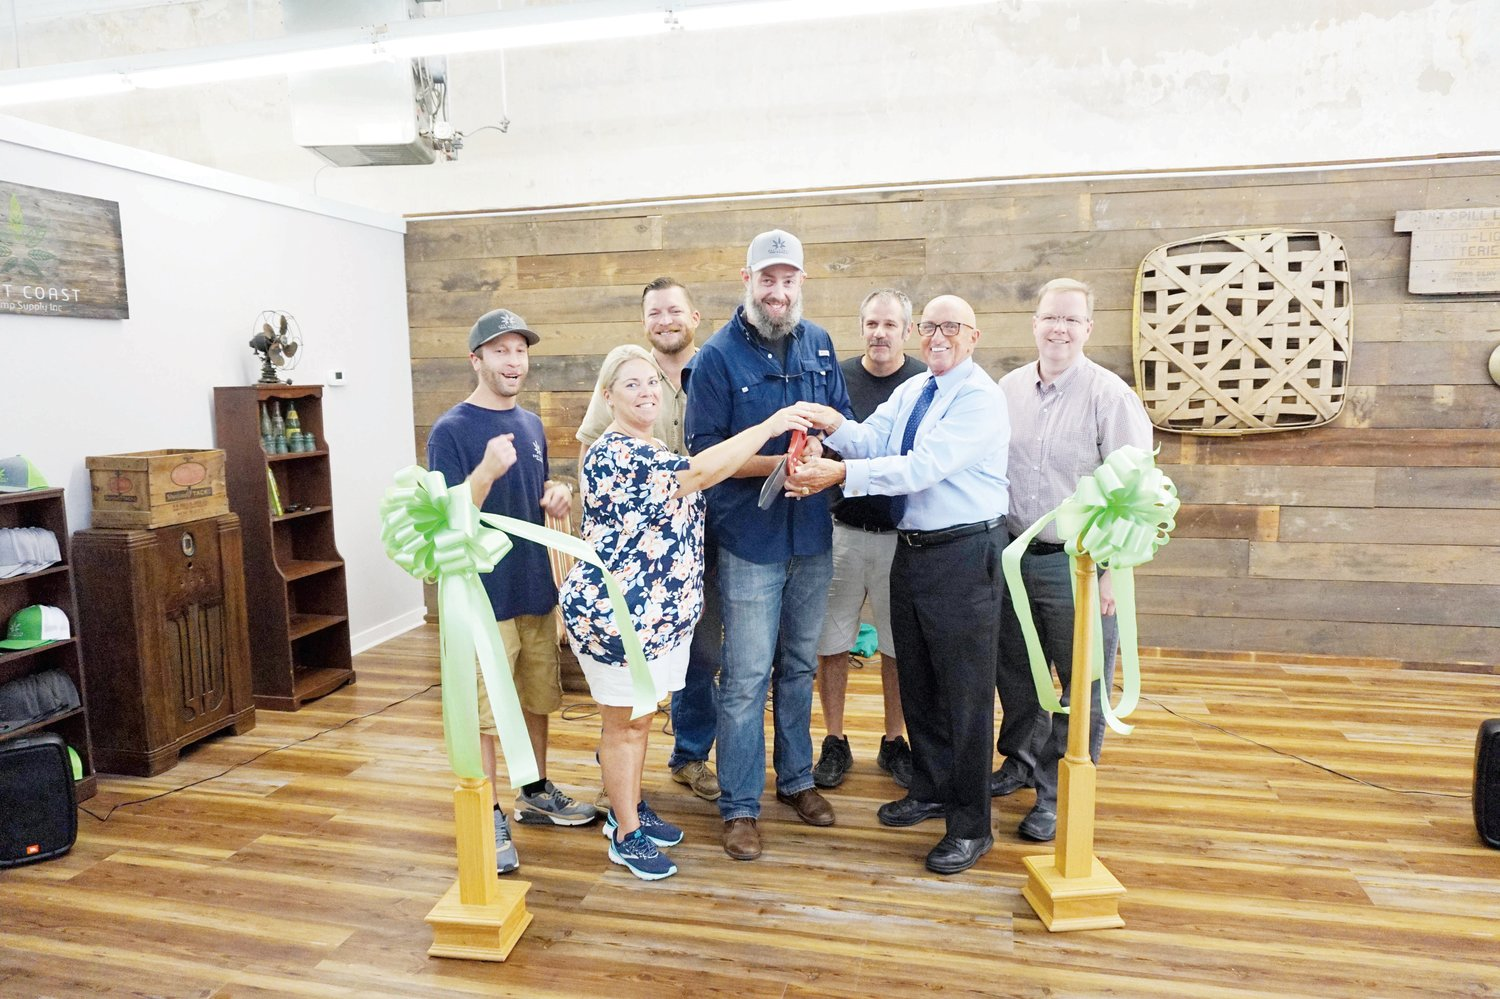 East Coast Hemp Supply cuts ribbon .The Dunn Area Chamber of Commerce held a ribbon-cutting ceremony for East Coast Hemp Supply Inc., located at 114 W. Broad St., Dunn. Pictured from left are Kevin Pope, ECHS production manager; Dunn Chamber President Renee Jackson; Curtis Godwin, ECHS production manager; Wesley Johnson, ECHS chief operating officer; Don Wood; Dunn Mayor Oscar Harris; and Dunn City Manager Steven Neuschafer.